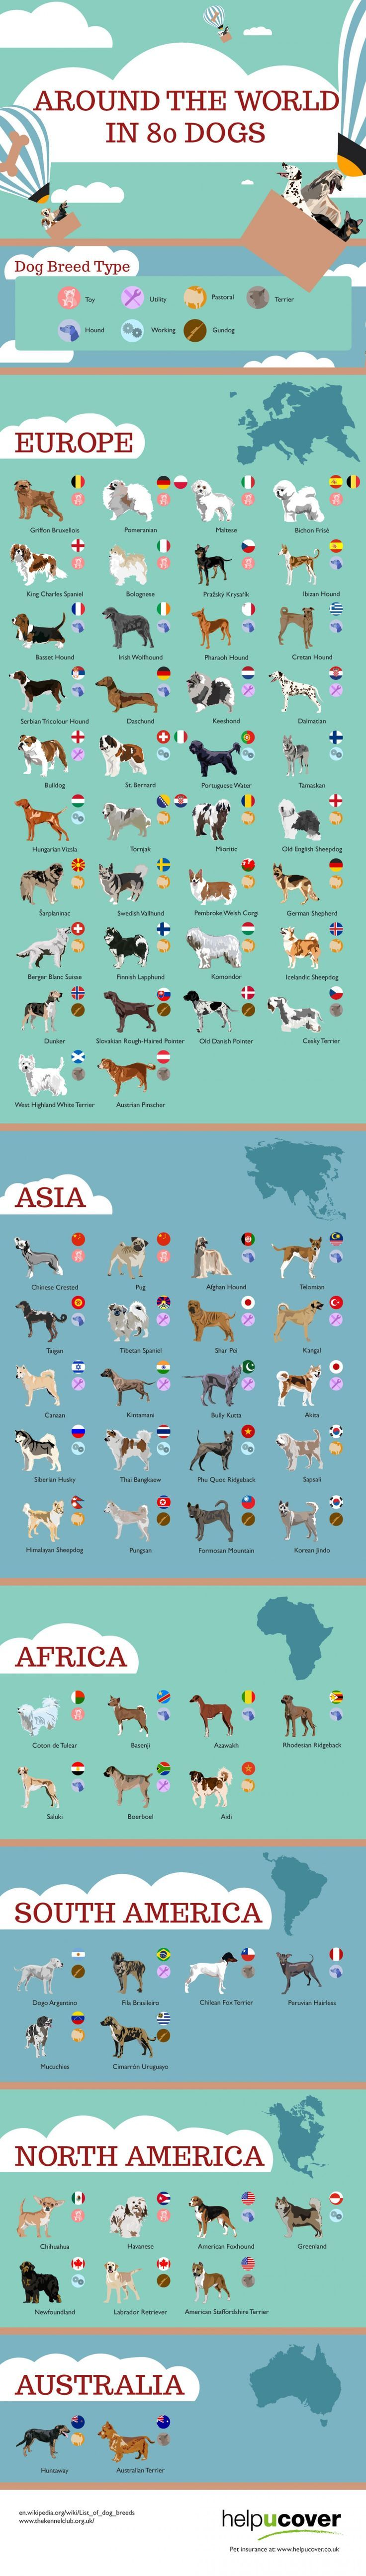 Dogs Breeds - Looking For A New Dog? Try These Resources! * Click image to read more details. #DogsBreeds